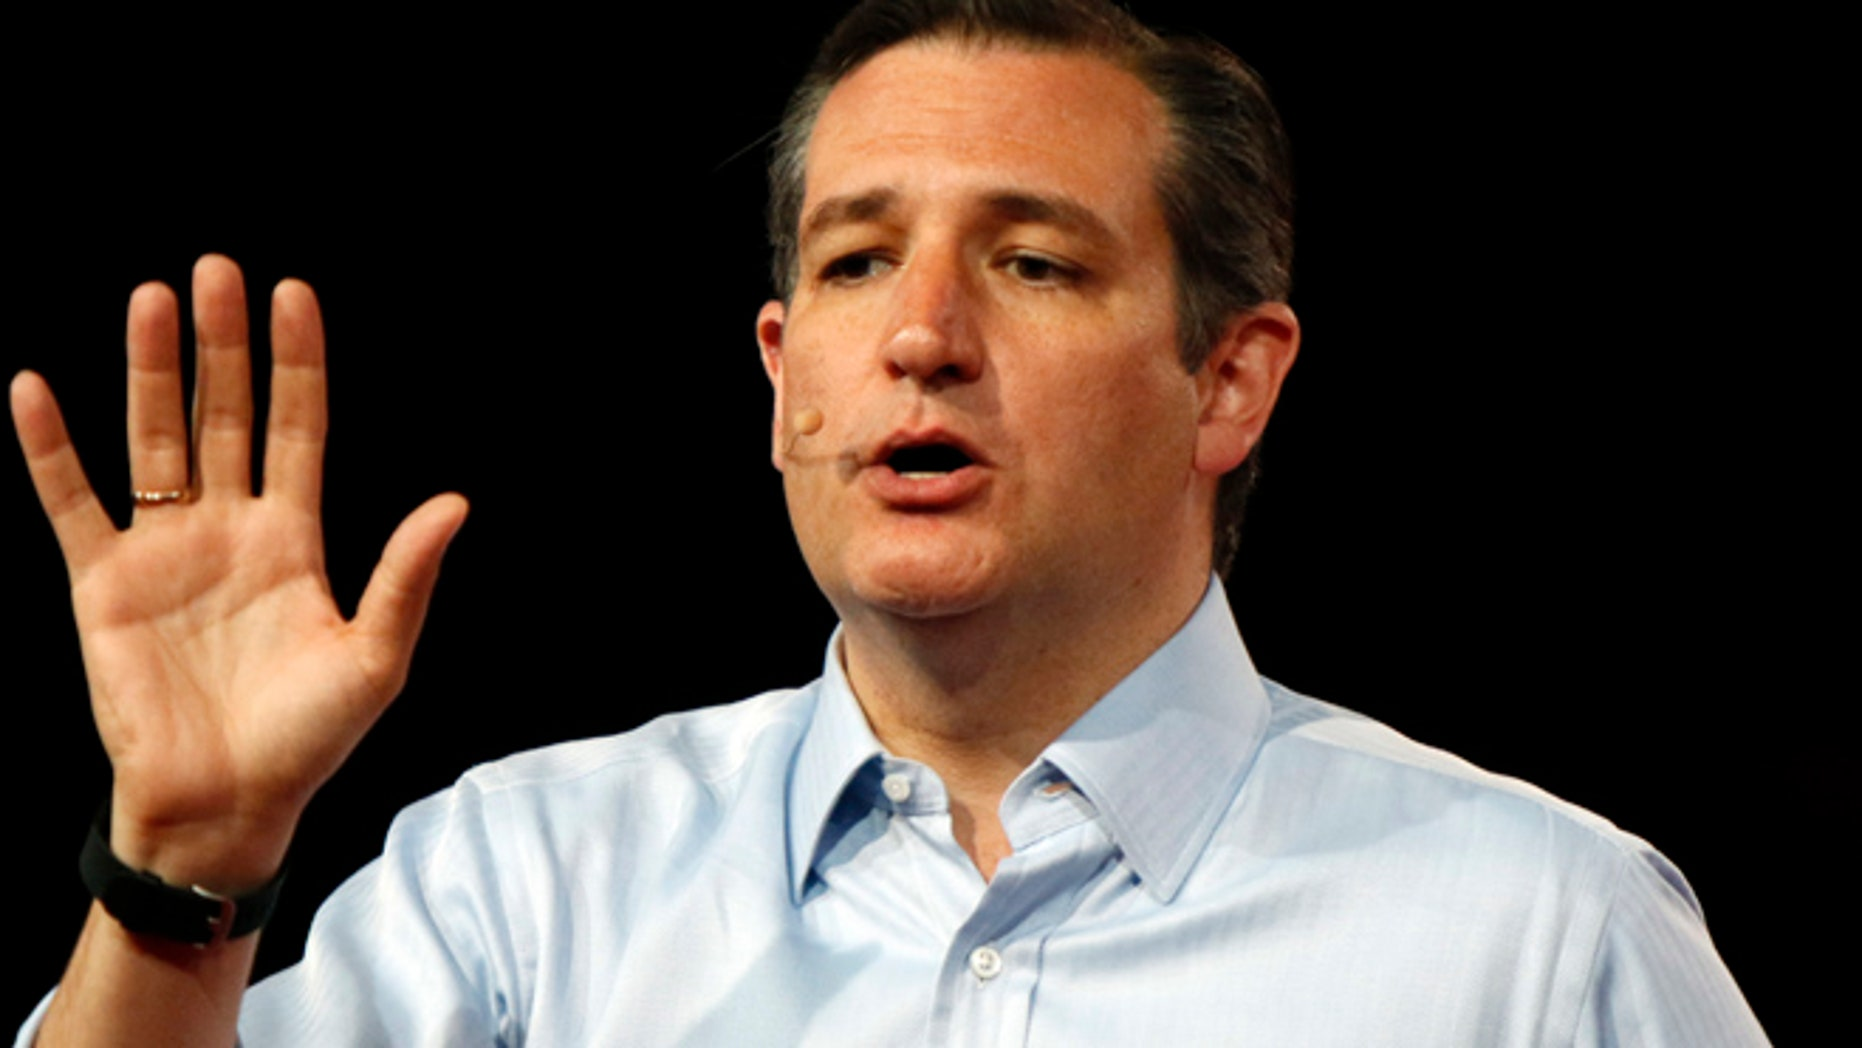 Aug 22, 2015: Republican presidential candidate, Sen. Ted Cruz, R-Texas, speaks at the Defending the American Dream summit hosted by Americans for Prosperity at the Greater Columbus Convention Center in Columbus, Ohio. (AP)